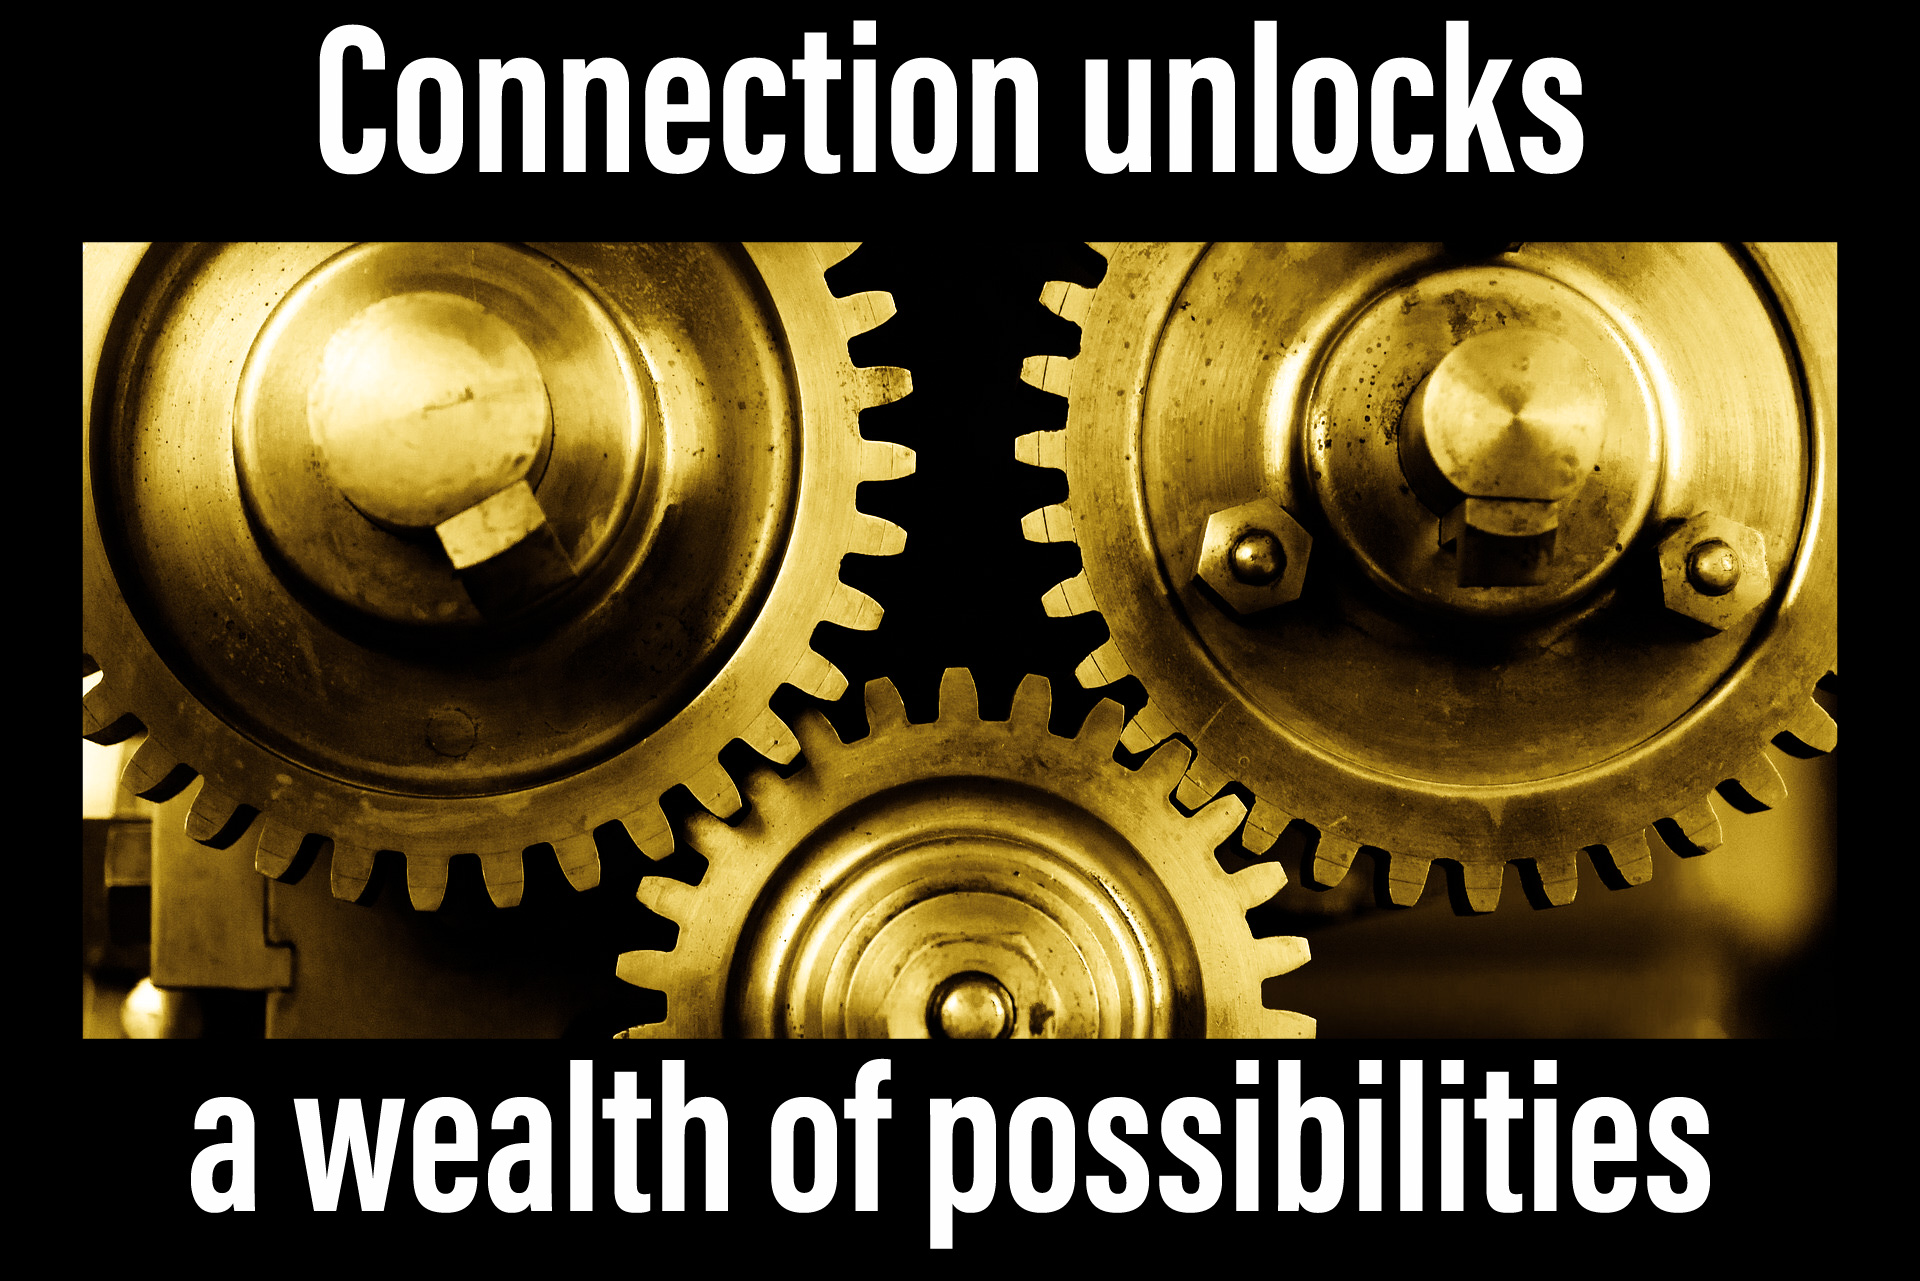 Connection wealth poster.jpeg